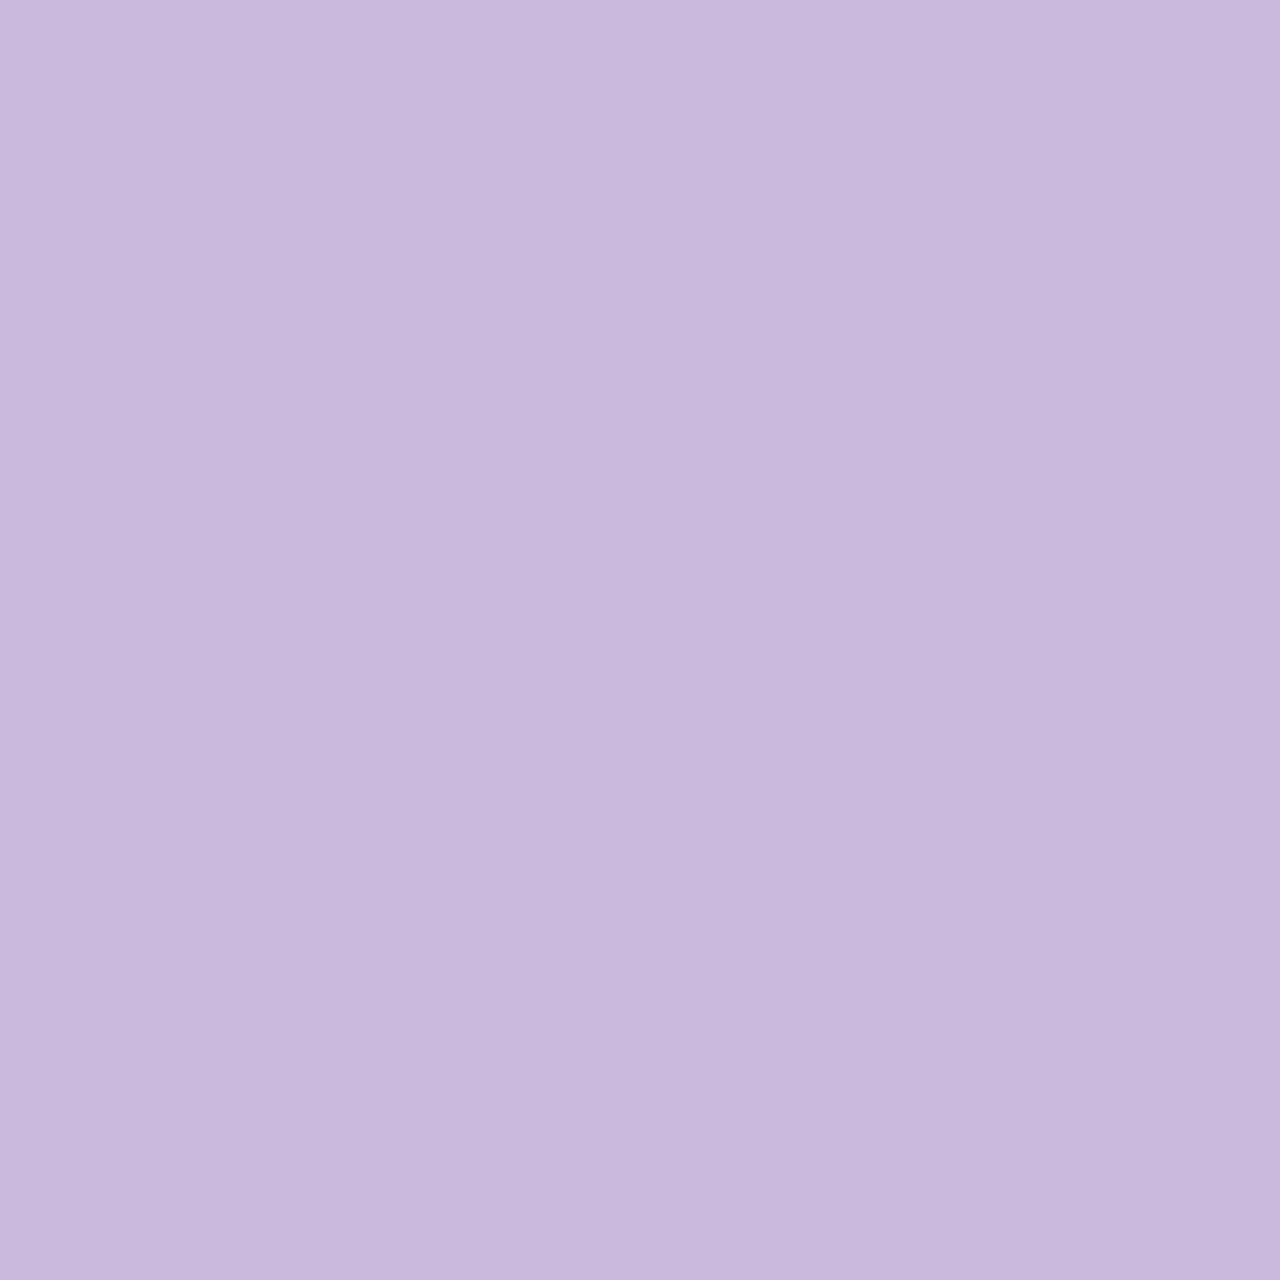 Rosco Calcolor Sheet #4915: 15 Lavender, Gels